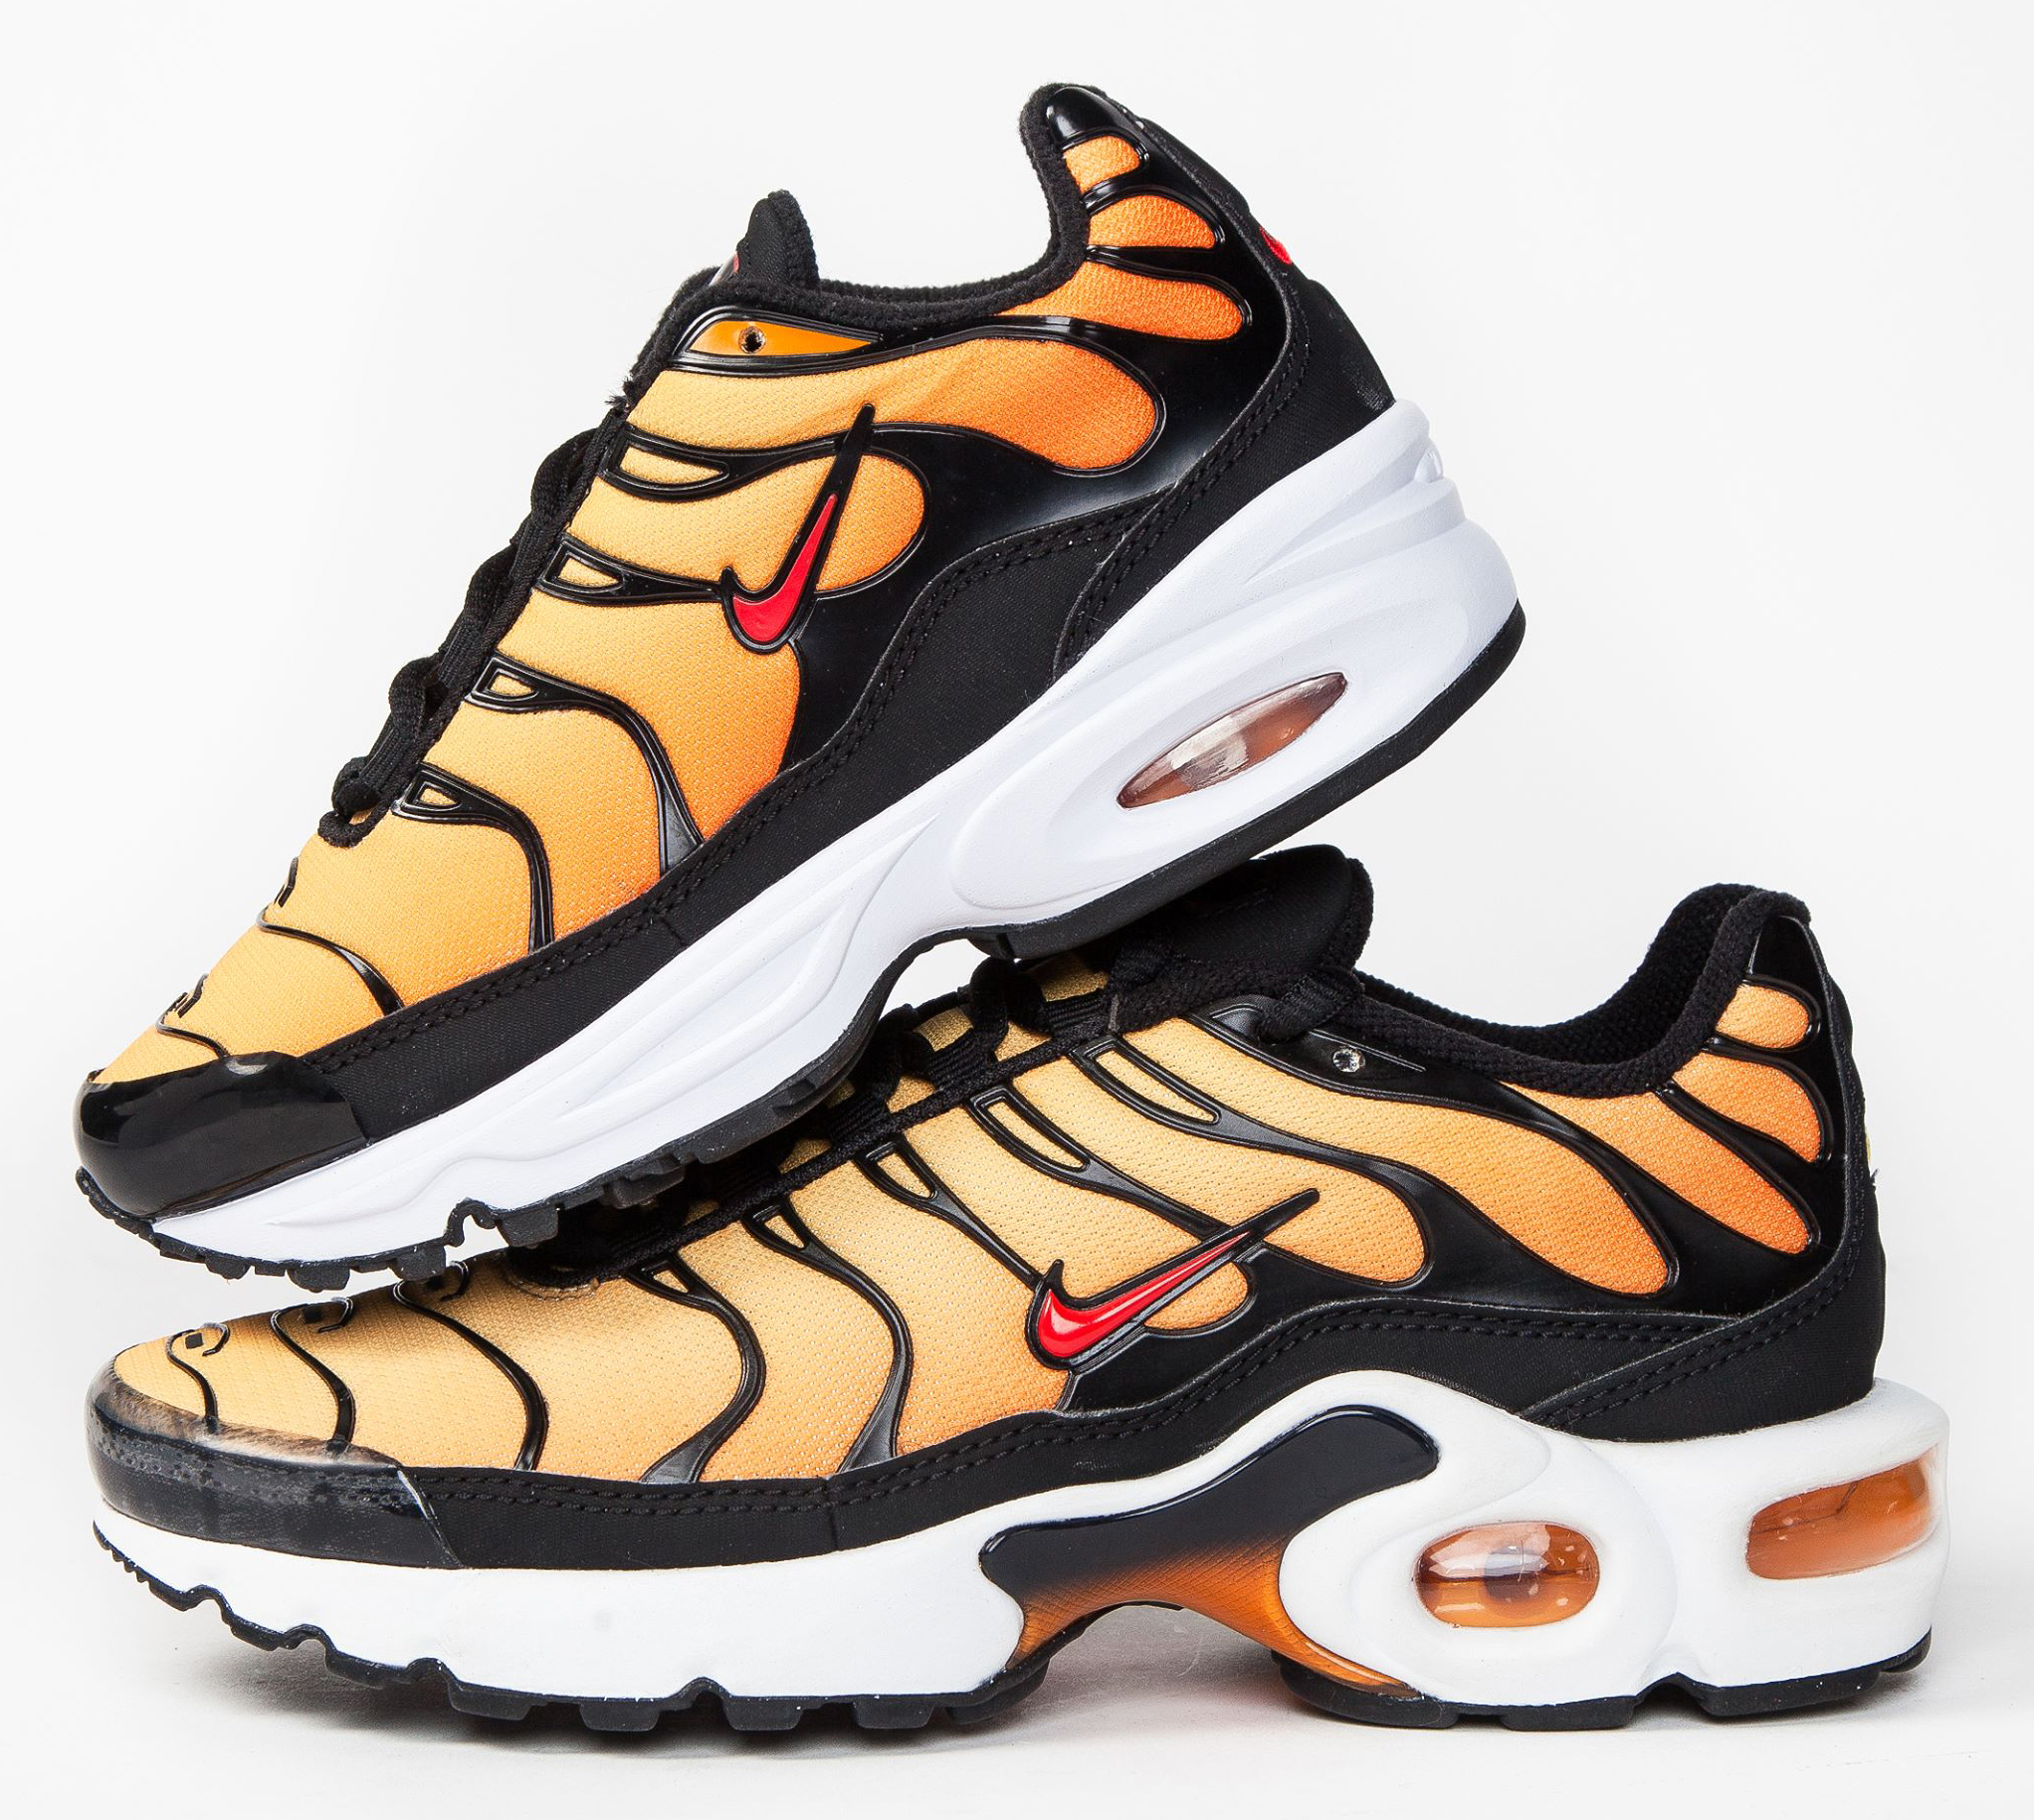 e82697491b Champs Sports Cyber Monday 2018 Deals on Sneakers and Sportswear ...